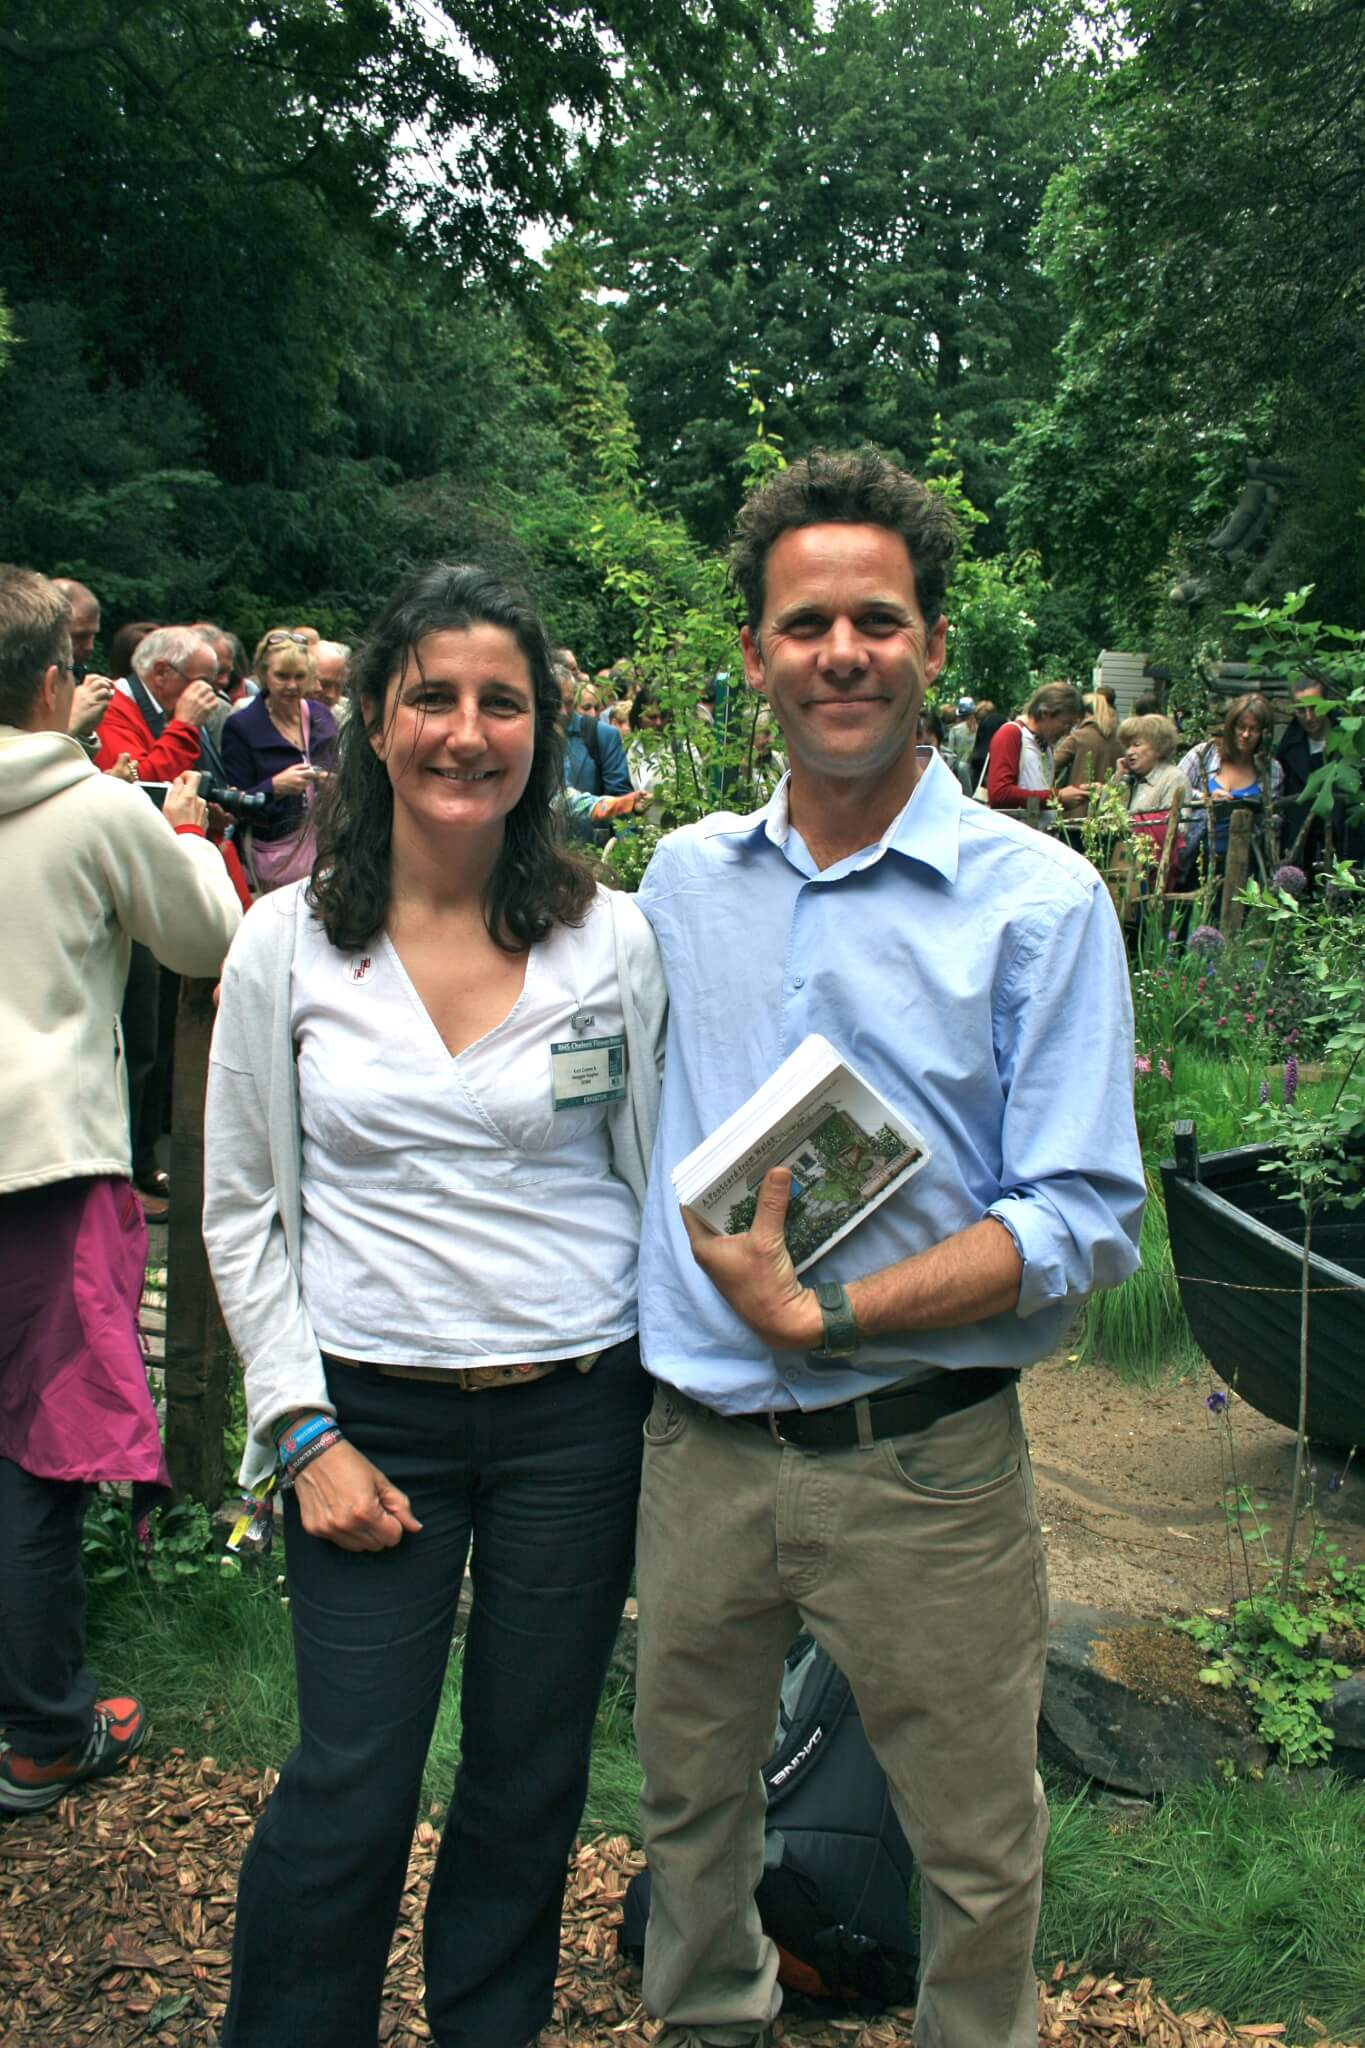 J And S Scapes In Buckinghamshire Win Gold At Chelsea Flower Show